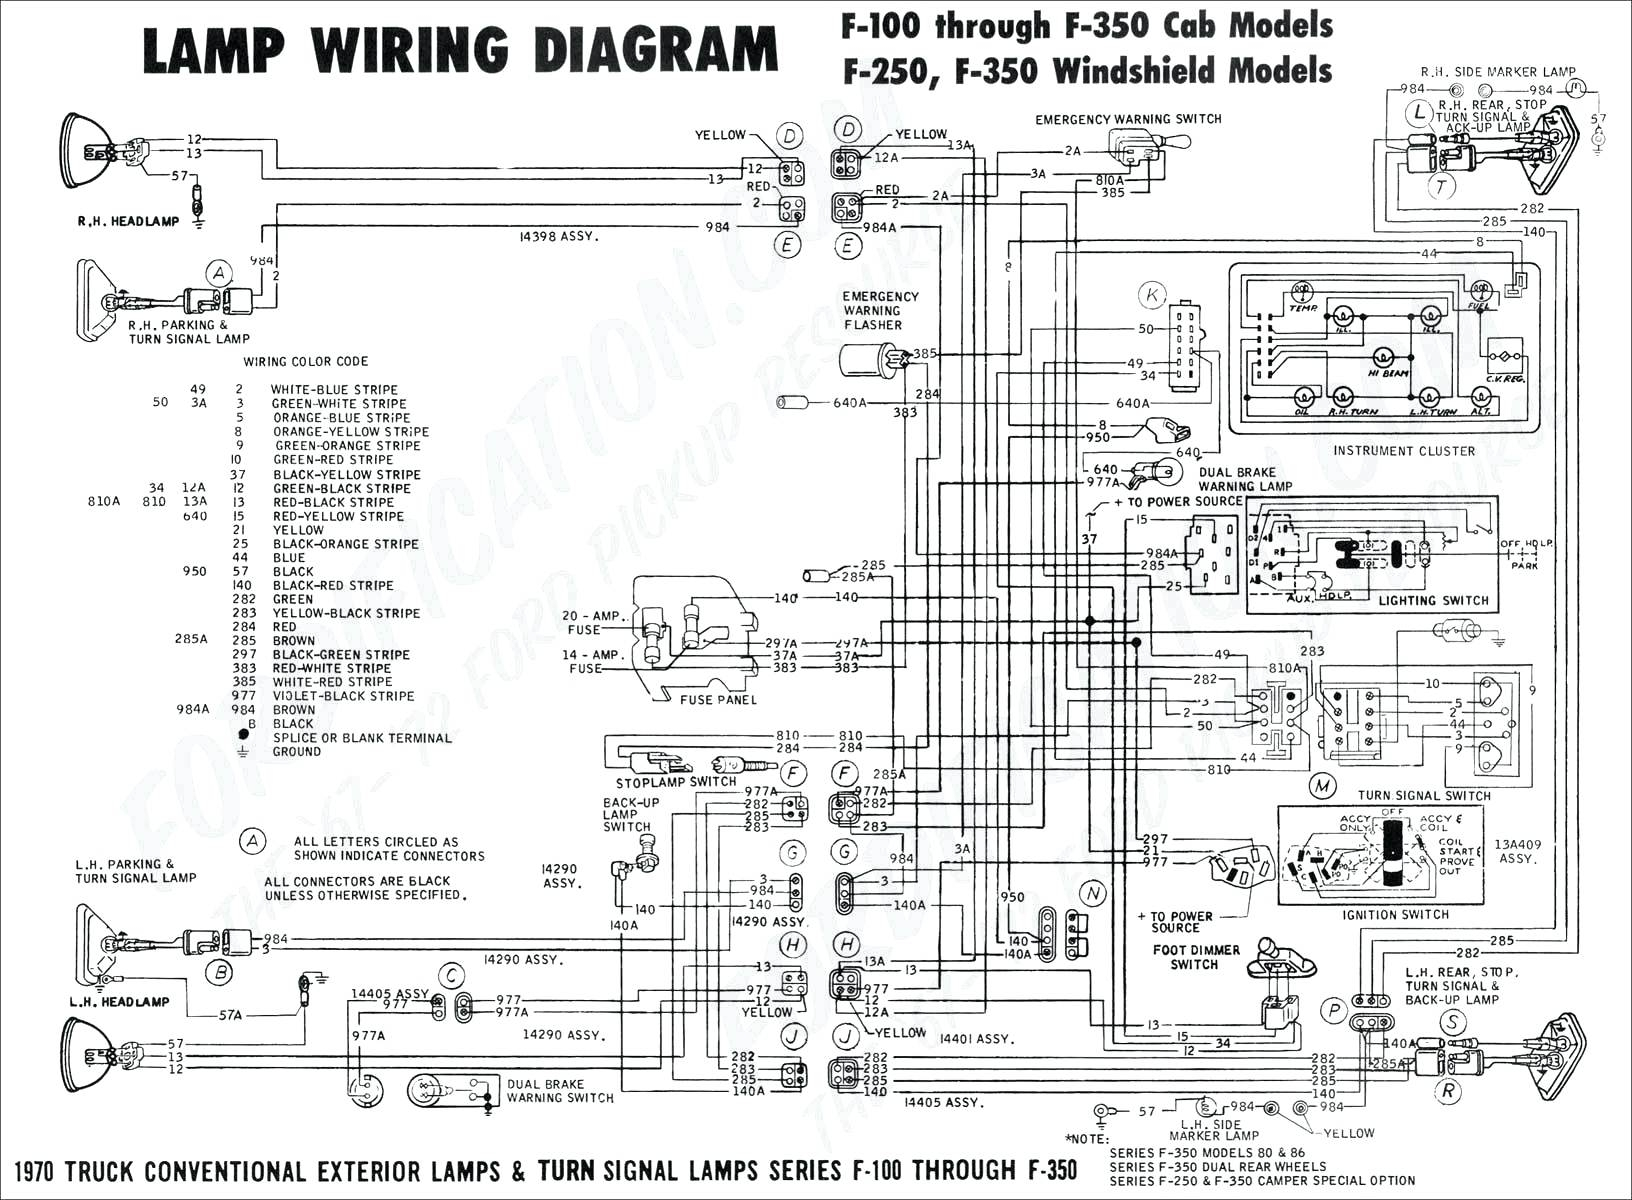 ford f250 starter solenoid wiring diagram | free wiring diagram gm starter wiring diagram free download schematic #9